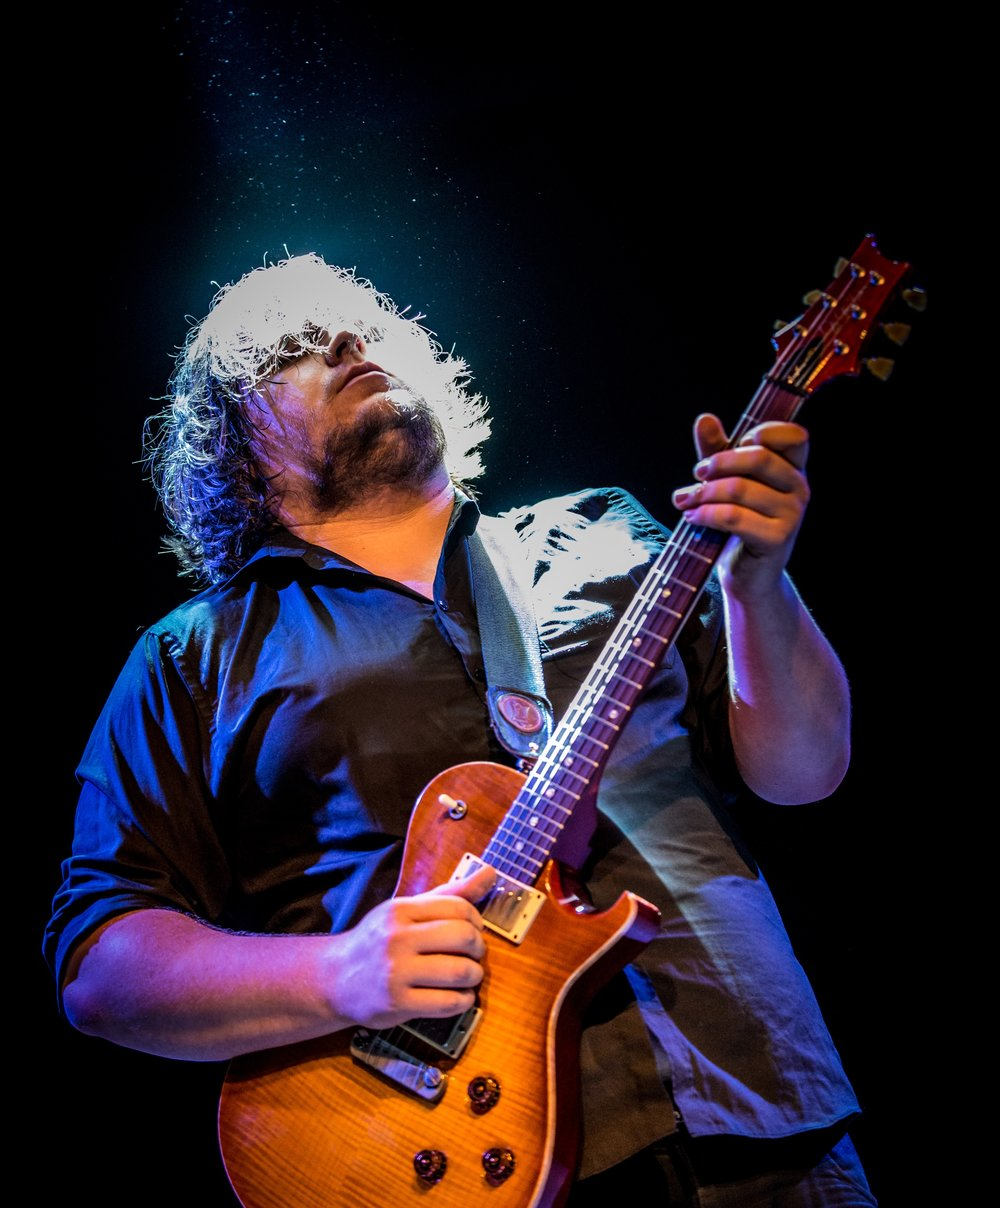 """CATFISH - BLUESDOOR 7PM / MUSIC 8.30PM£10 / £9 / £0 (BK)EMAIL TO RESERVE""""Catfish are one of the finest live bands in Britain today. The quality of musicianship is outstanding and in Matt Long, they have one of the greatest young guitarists on the scene today...""""Blues Matters Magazine"""